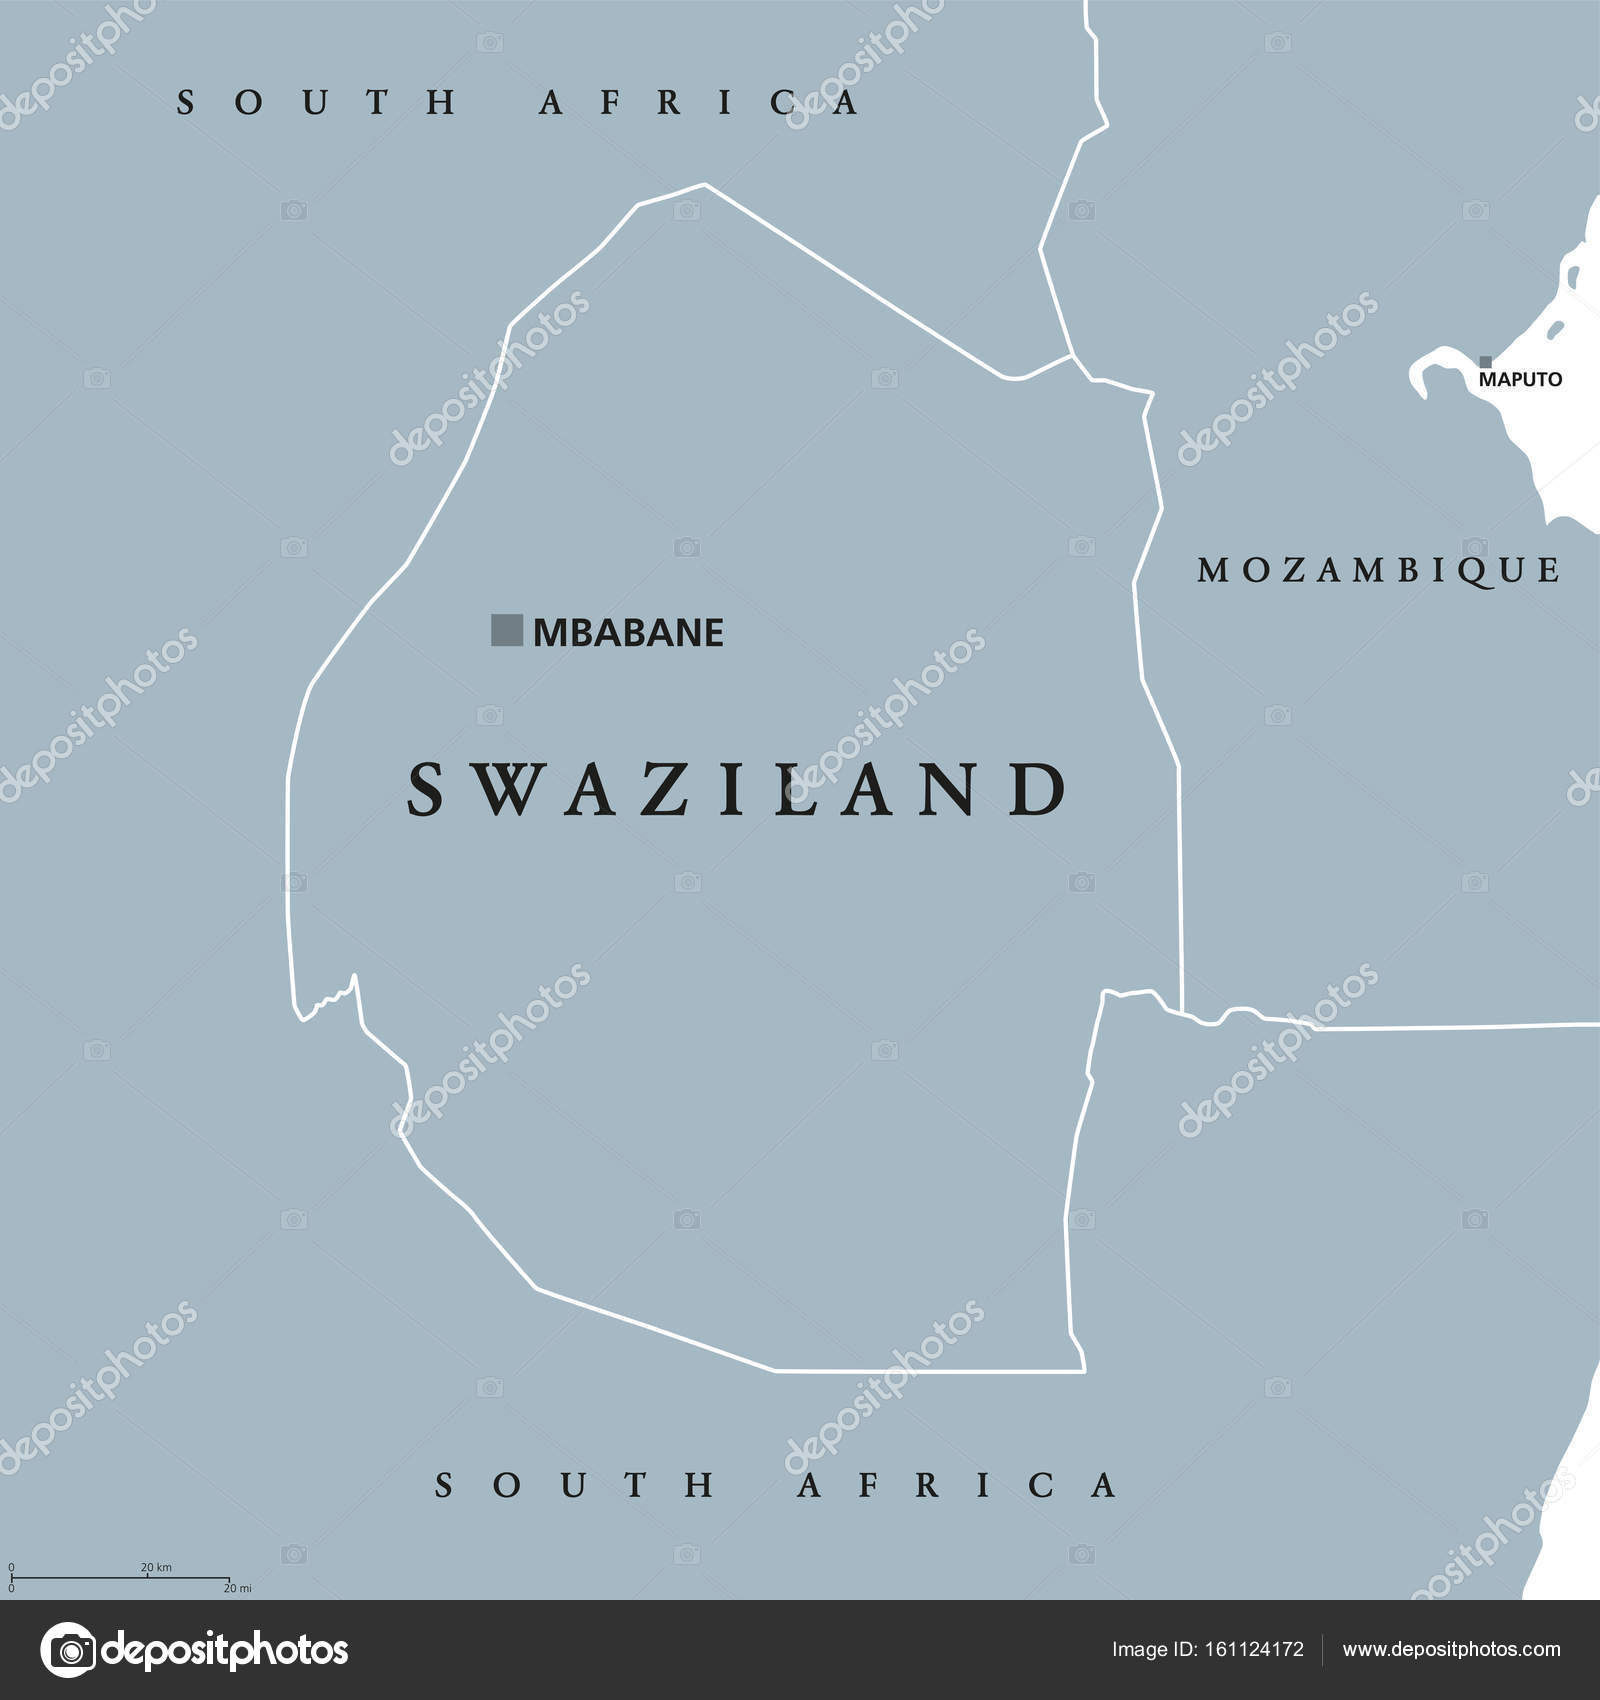 Swaziland political map stock vector furian 161124172 swaziland political map with capital mbabane kingdom of eswatini sometimes called kangwane sovereign state and landlocked country in south africa ccuart Gallery